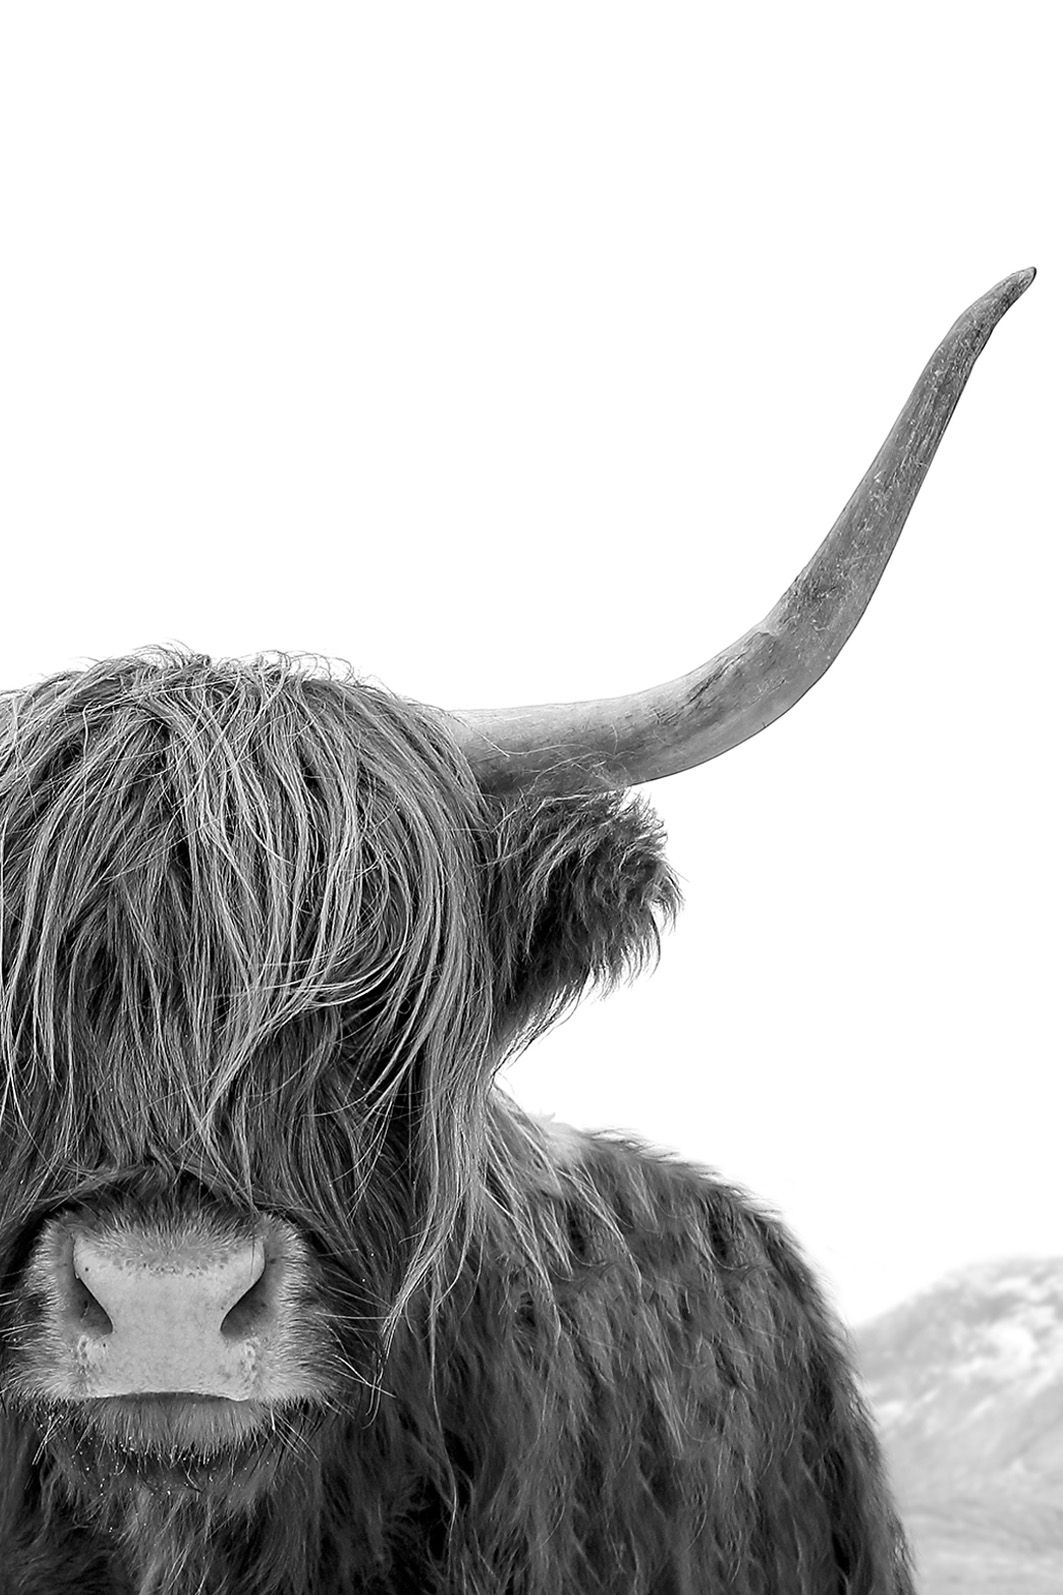 Highland cow photography art prints black and white prints black and white photography scandinavian art prints highland cow art print scottish